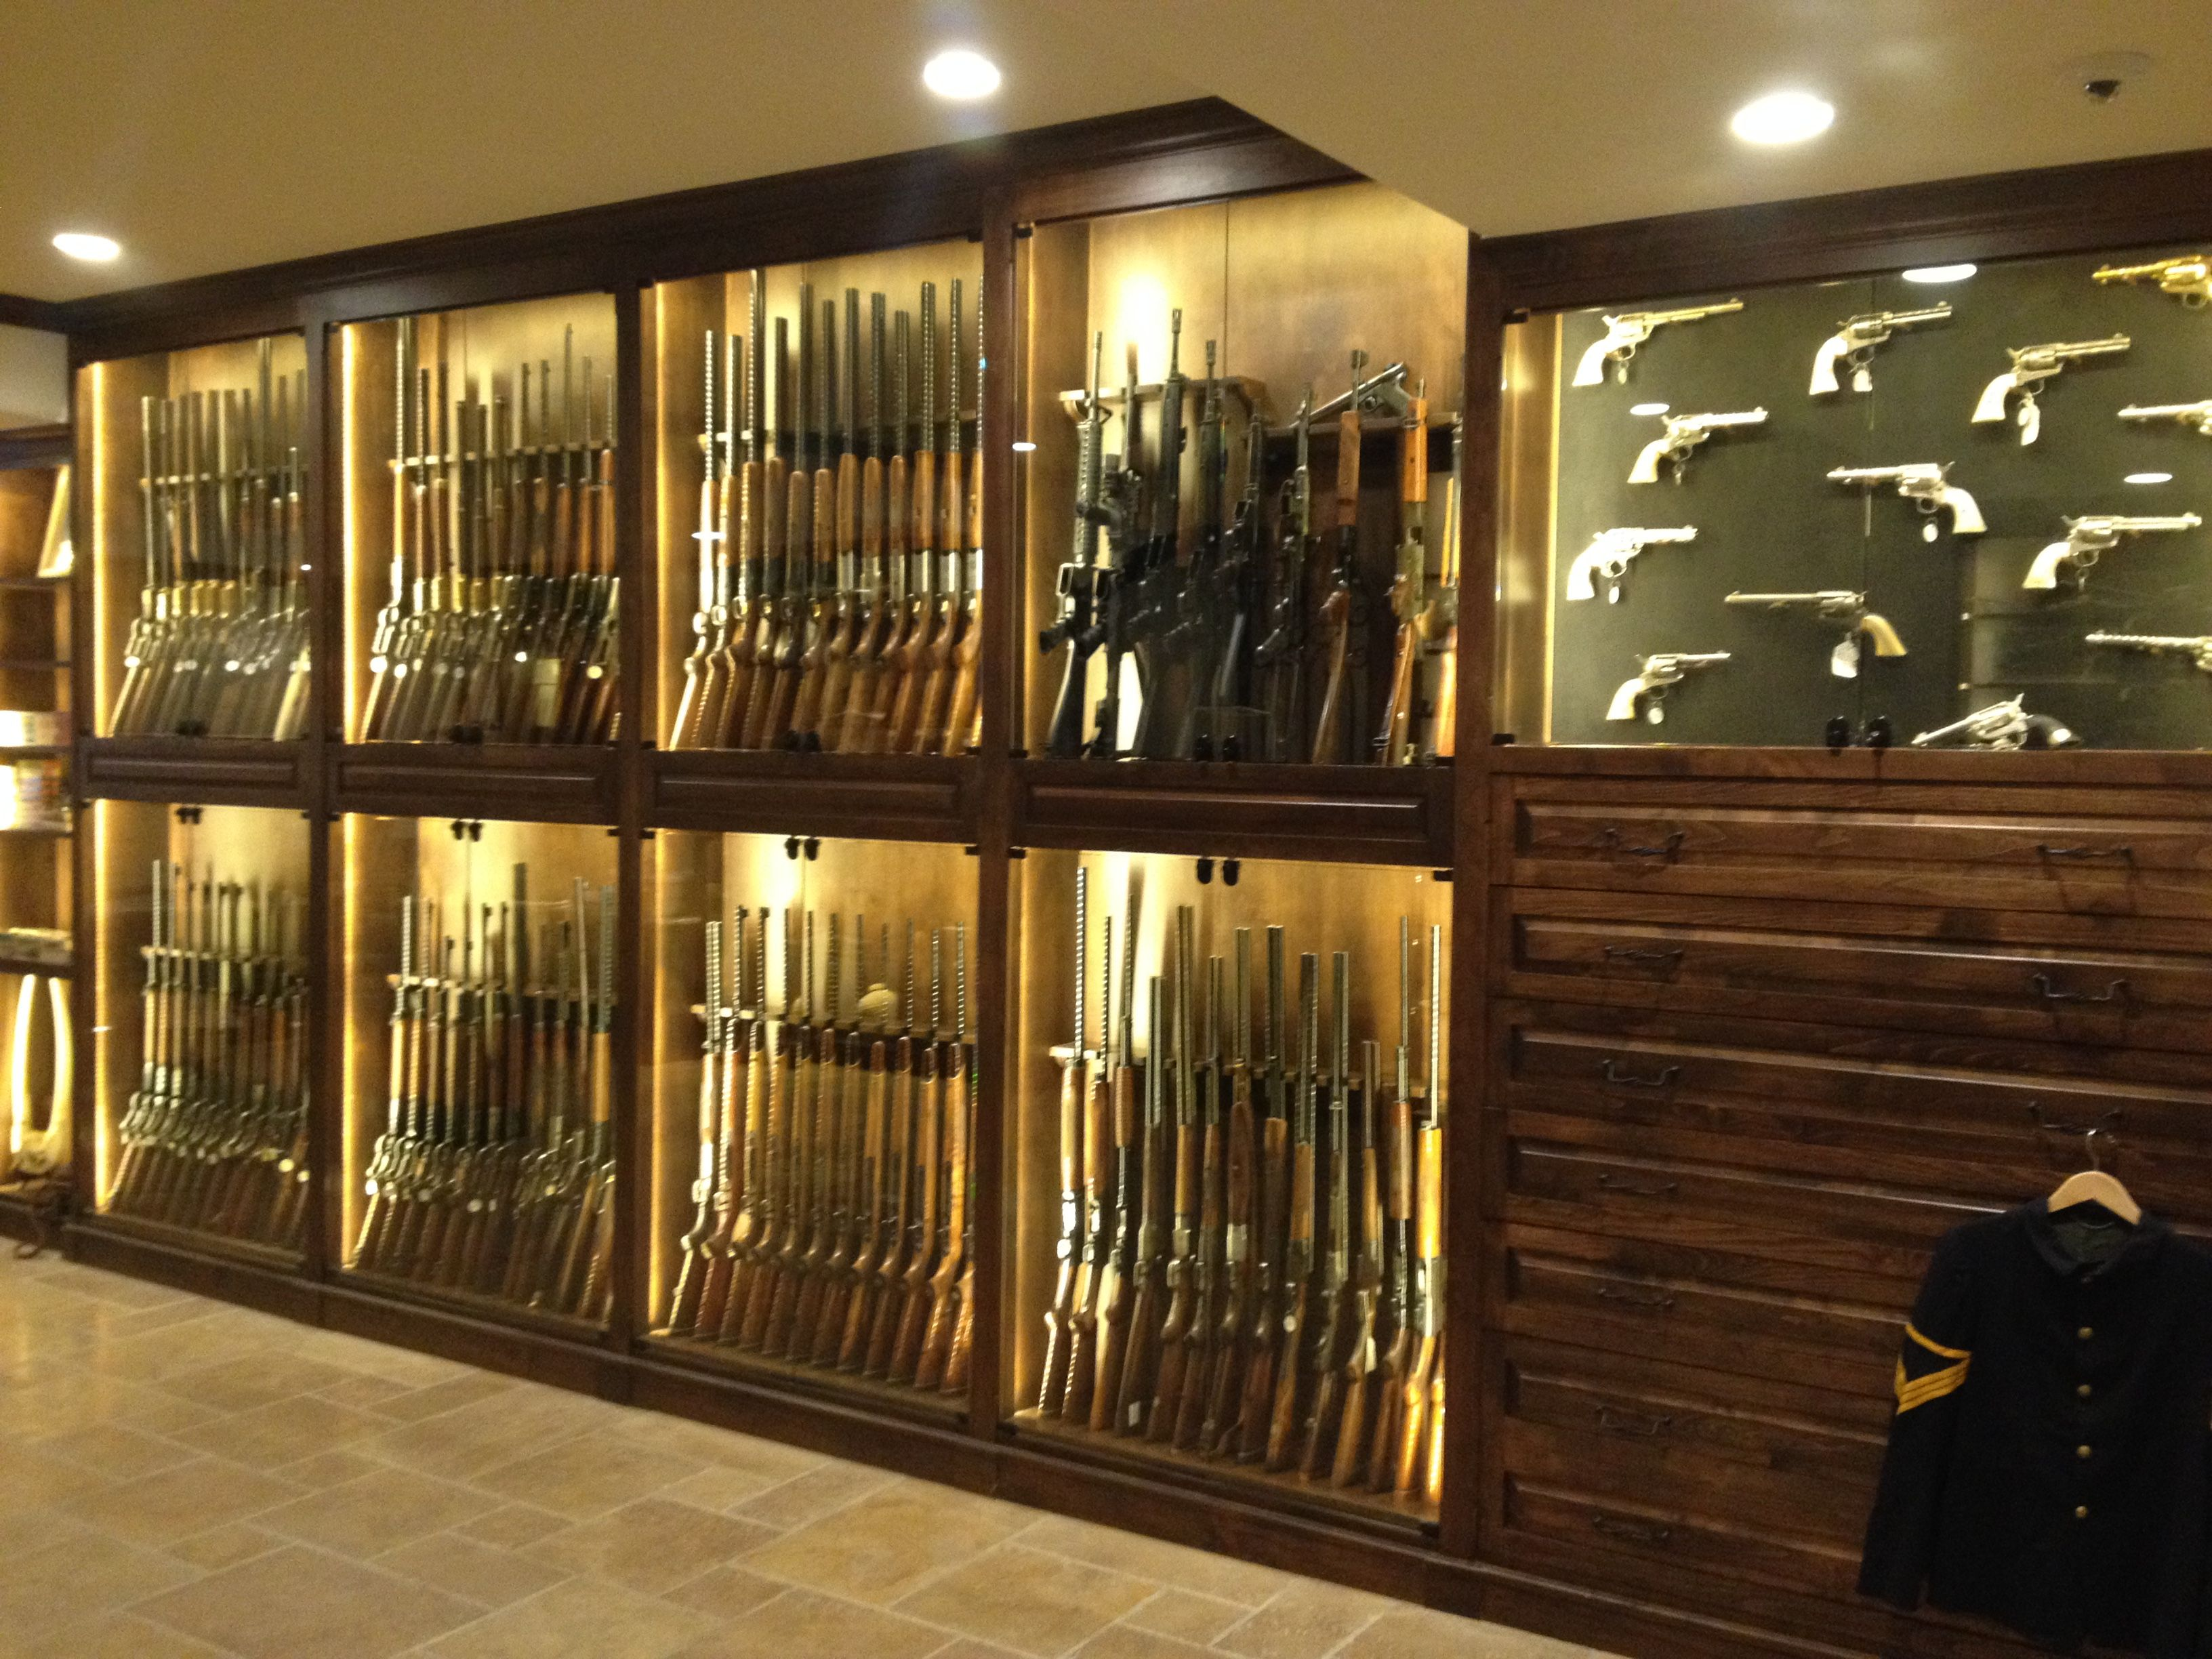 Hand Crafted Gun Room Cabinetry By Enoch Choi Design